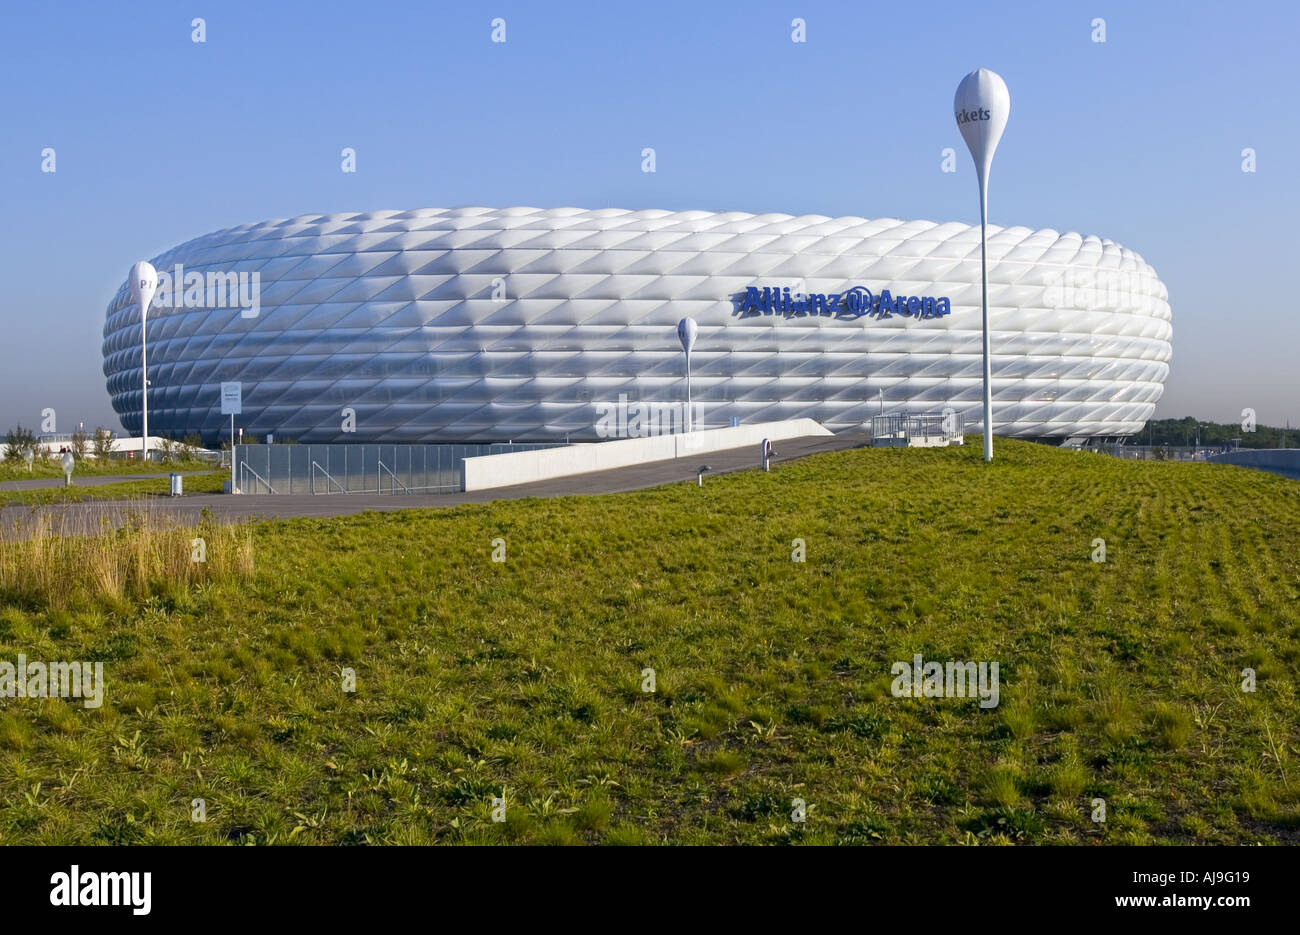 the famous Allianz Arena the stadium of BAYERN MUNCHEN Club  - Stock Image